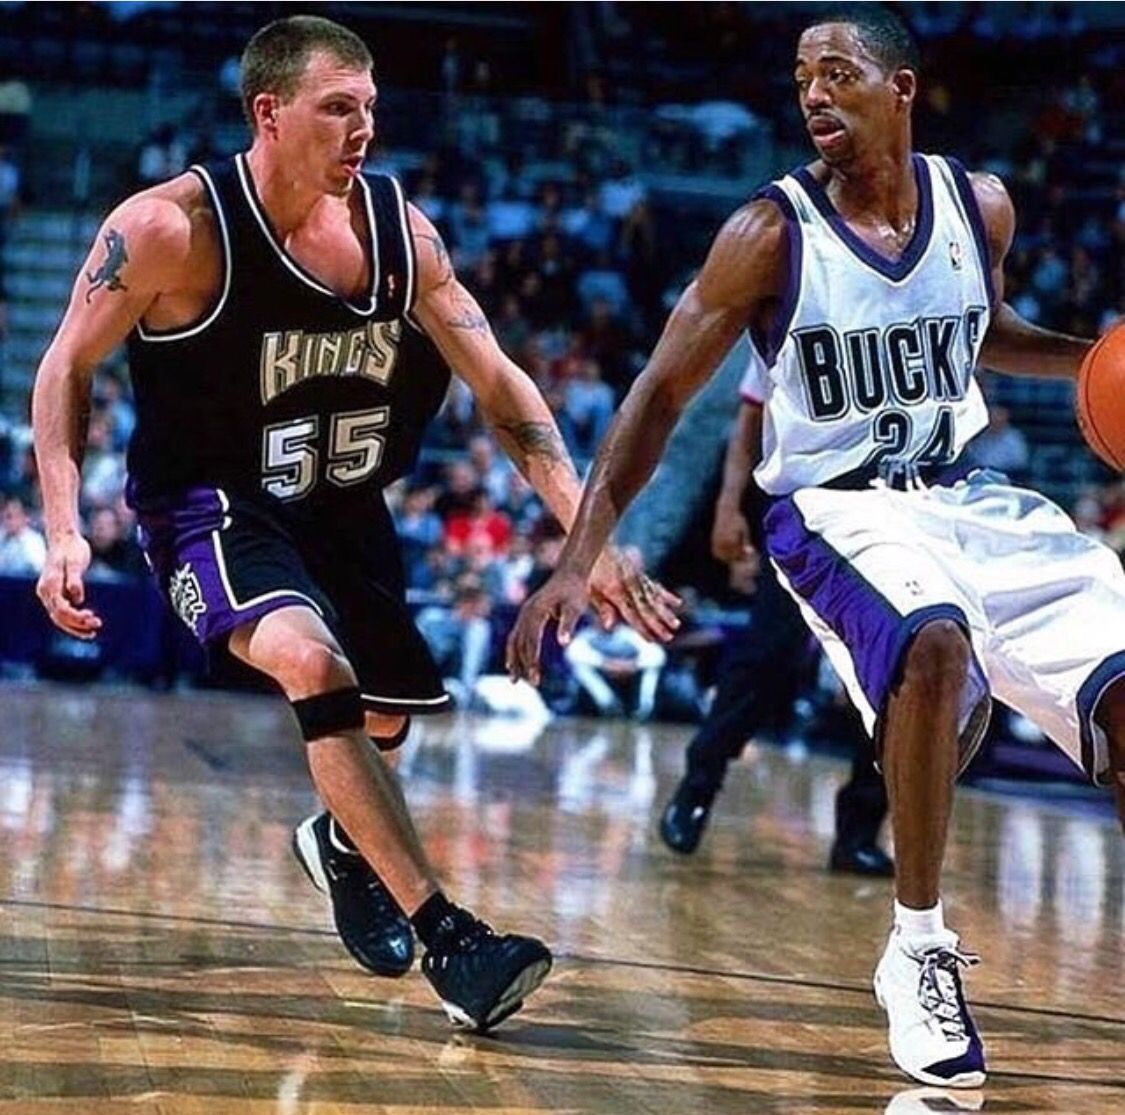 Rafer Alston vs Jason Williams Skip to my Lou vs White Chocolate